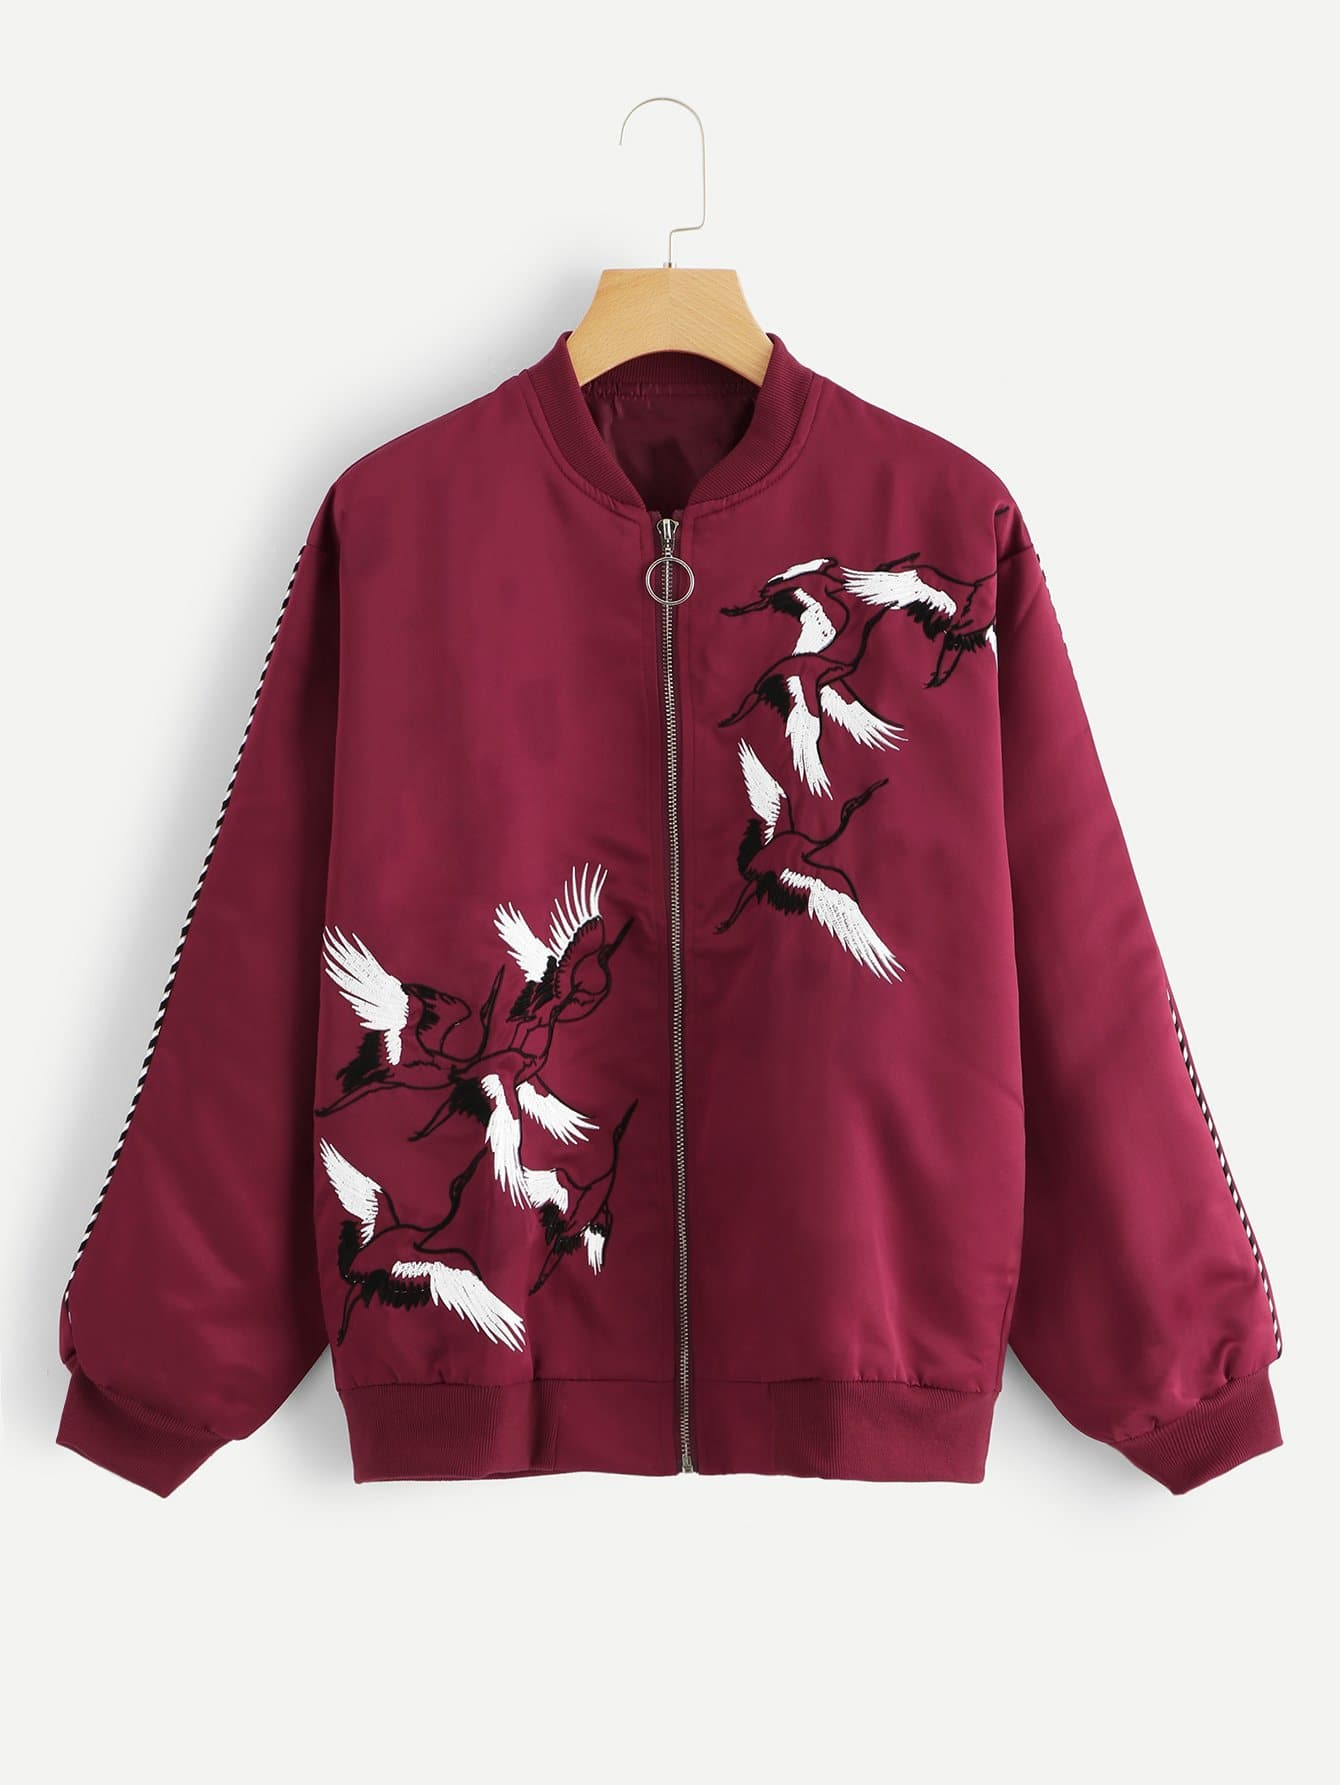 Crane Embroidered Zip Up Jacket Crane Embroidered Zip Up Jacket